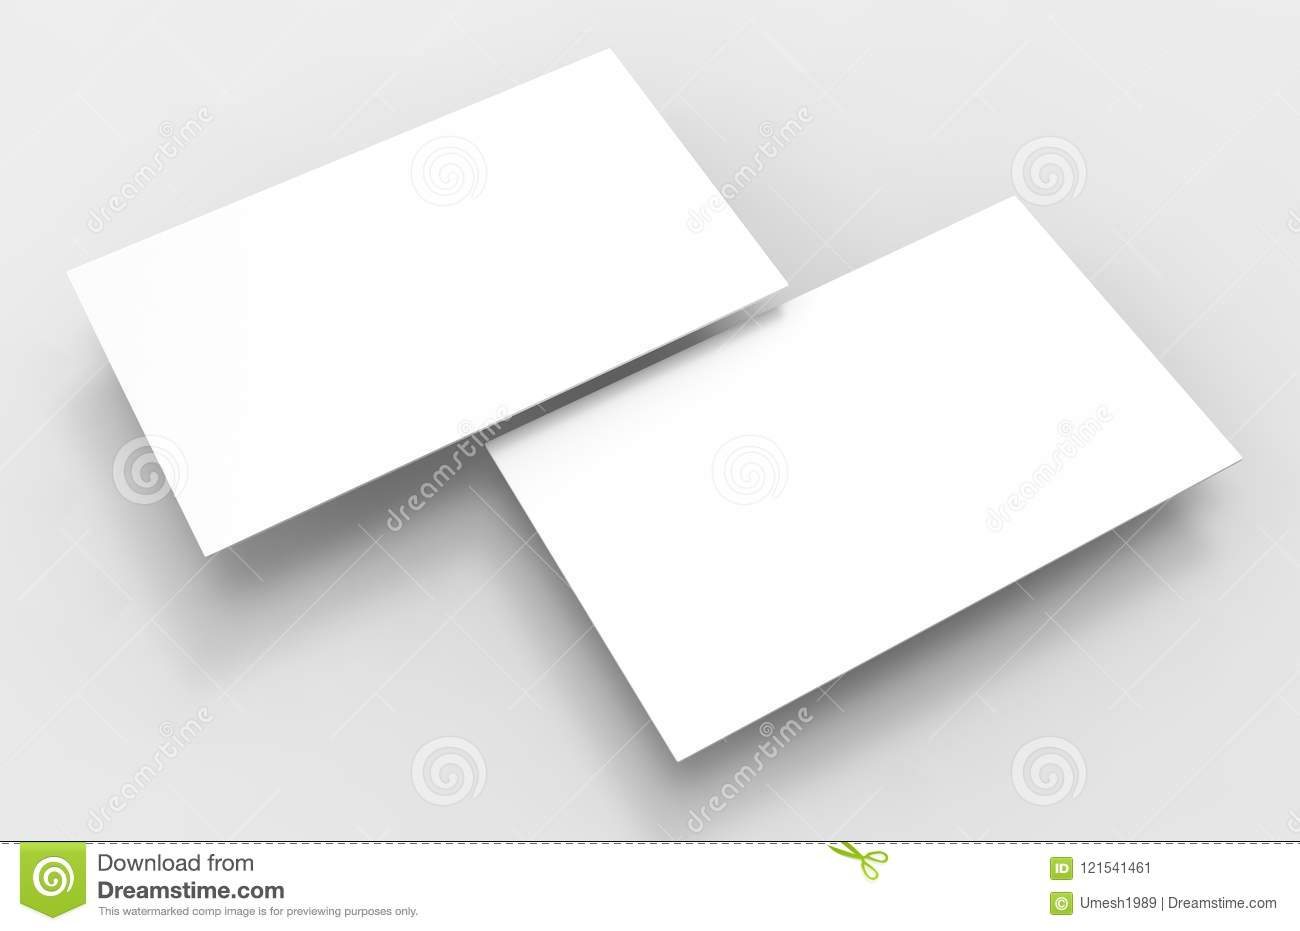 Blank white 3d visiting card template 3d render illustration for blank white 3d visiting card template 3d render illustration for mock up and design presentation flashek Choice Image